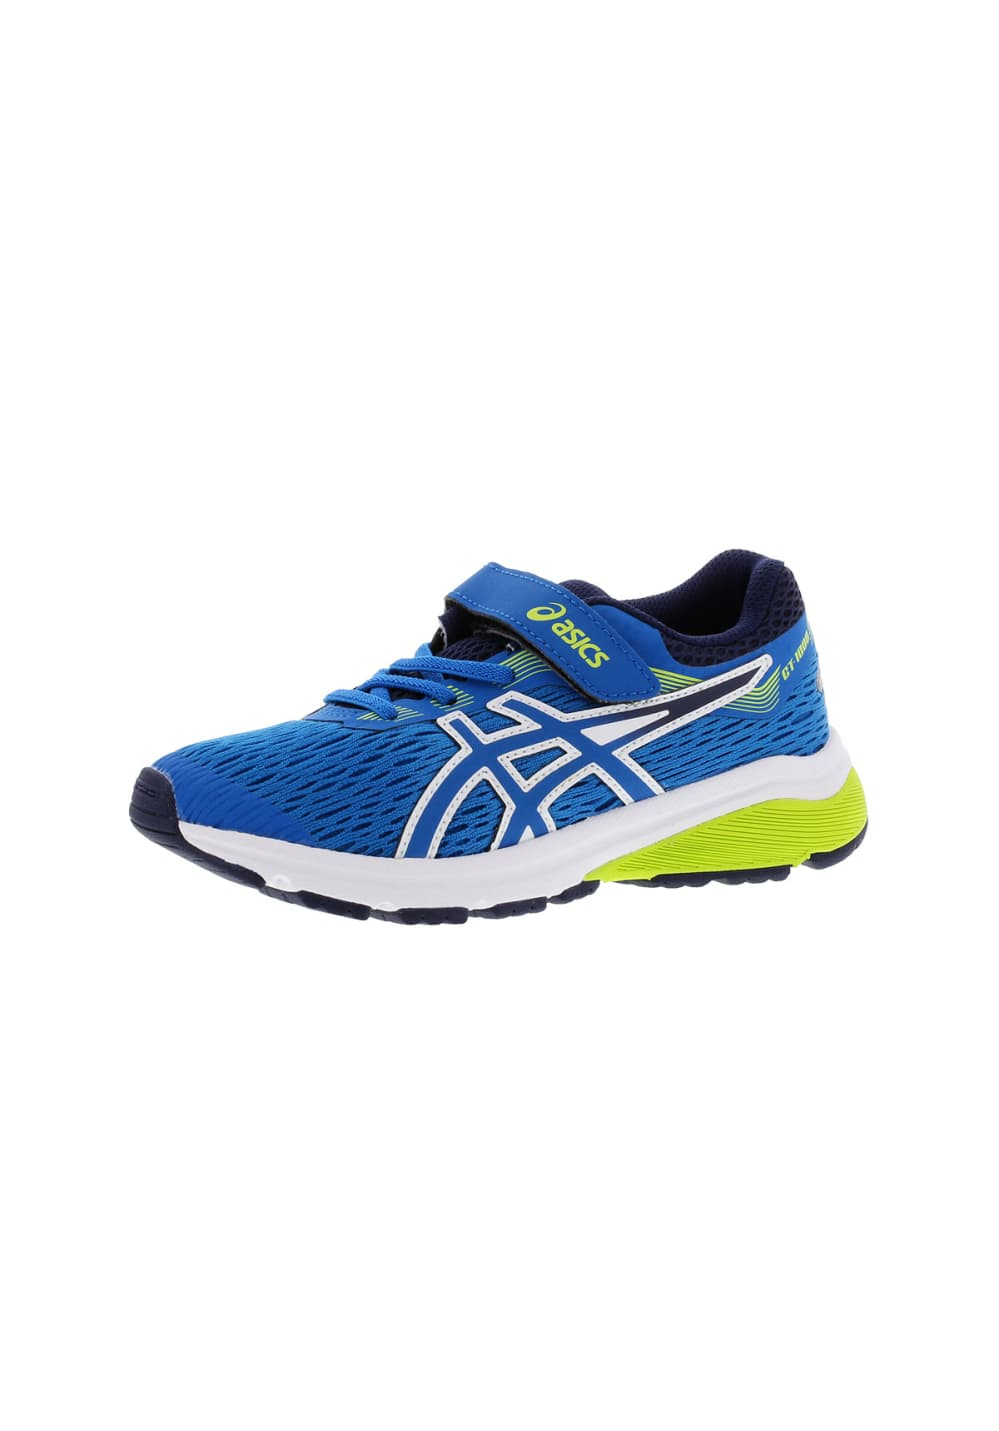 official photos d1519 09af6 asics kids gt 1000 7 ps running